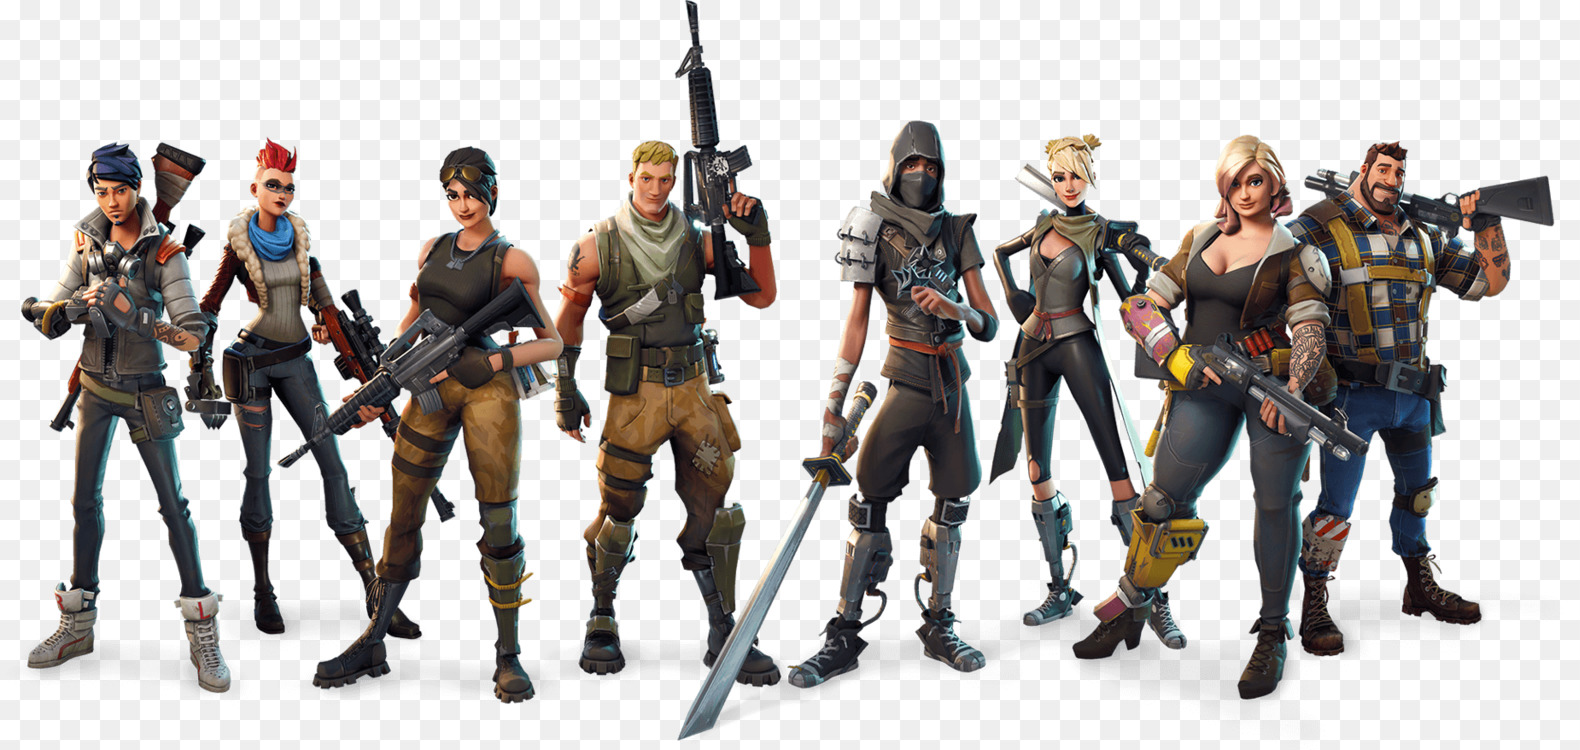 fortnite battle royale video game character sandbox survival - fortnite battle royale png